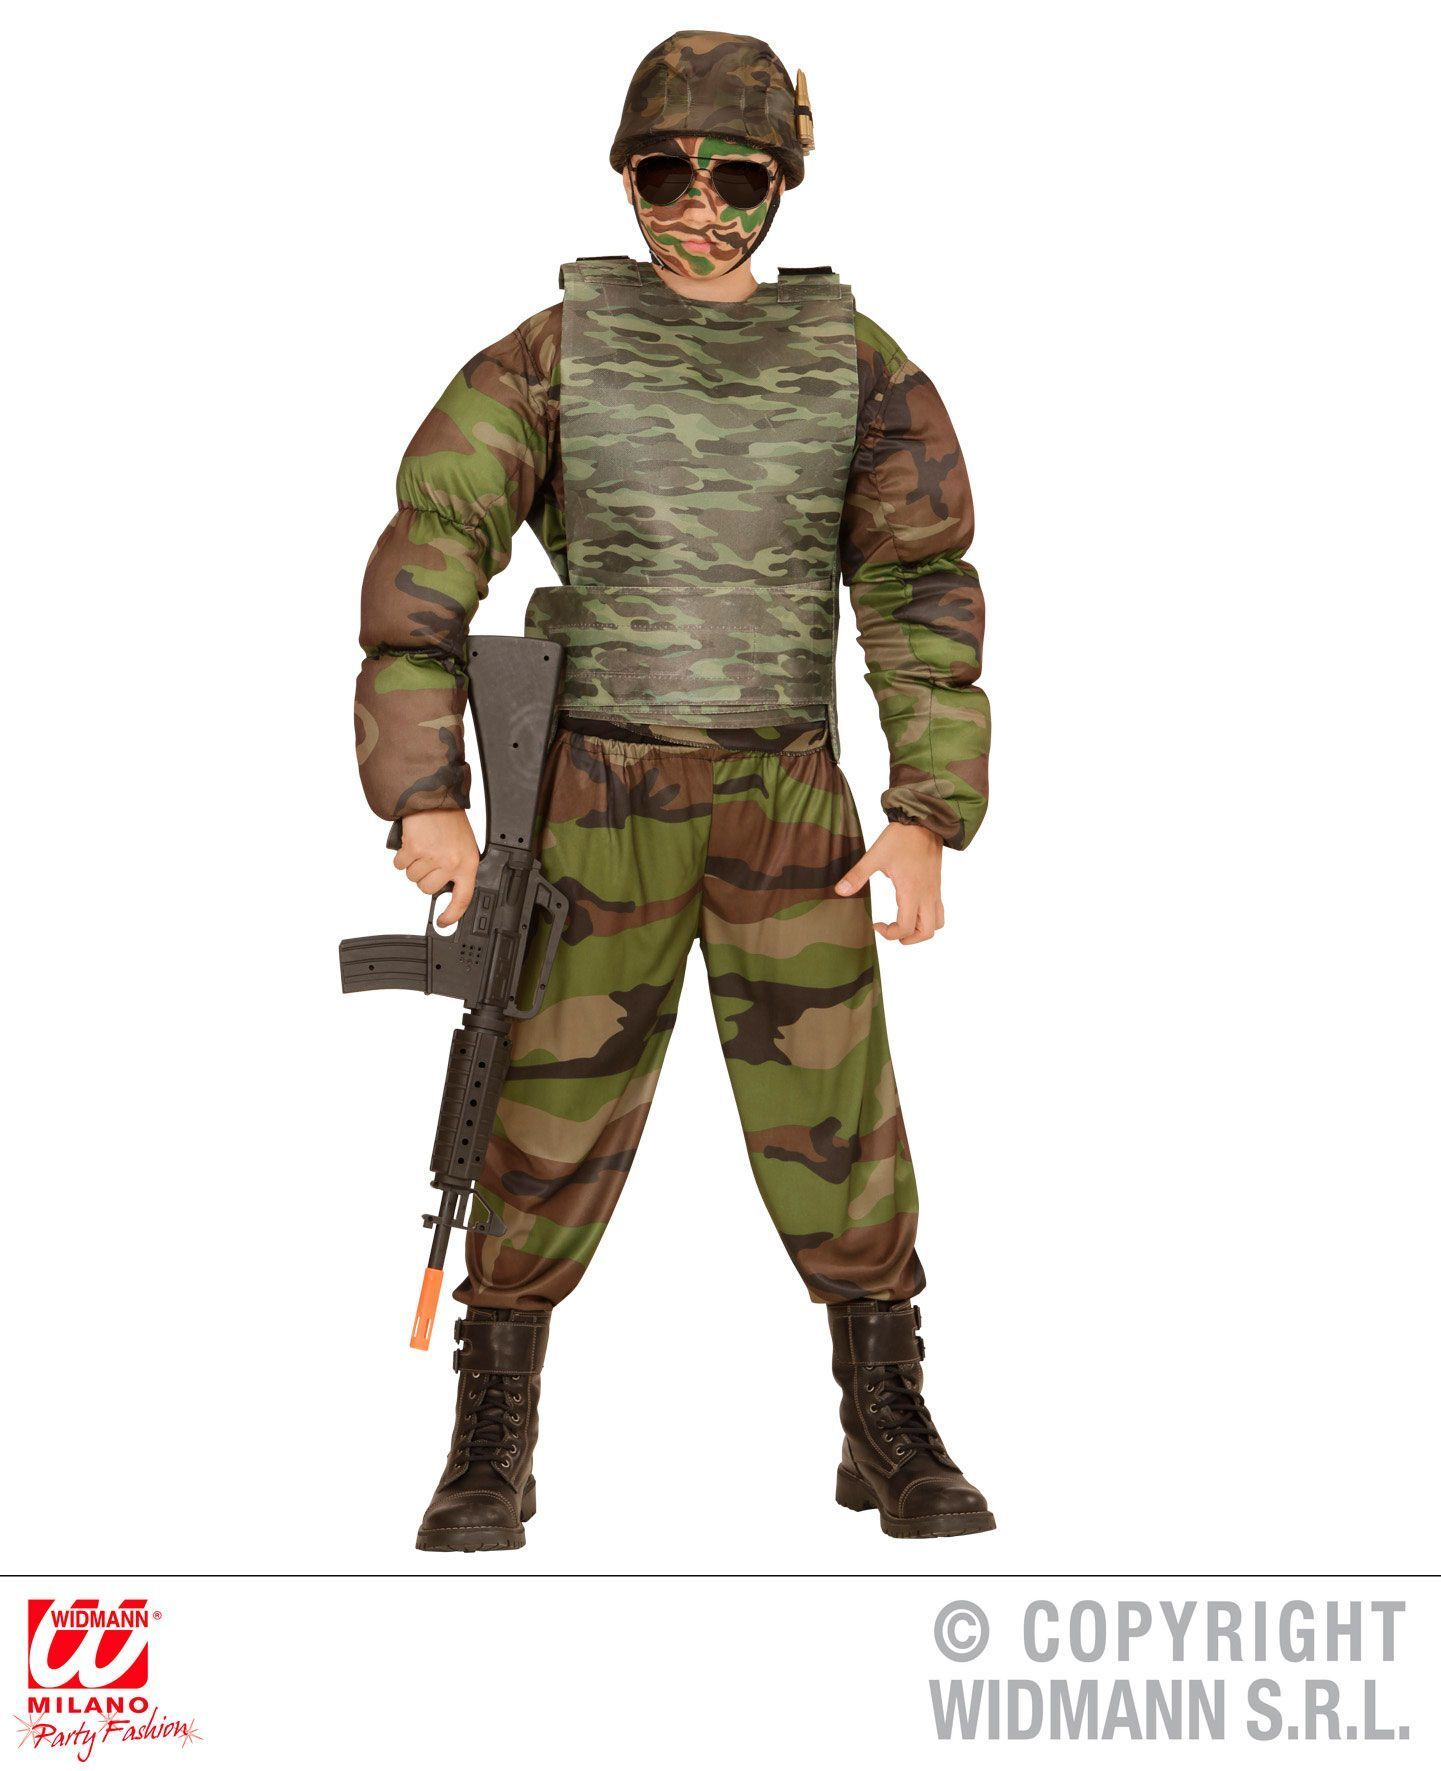 Militair kogelvrij vest soldaat camouflage kind in the army